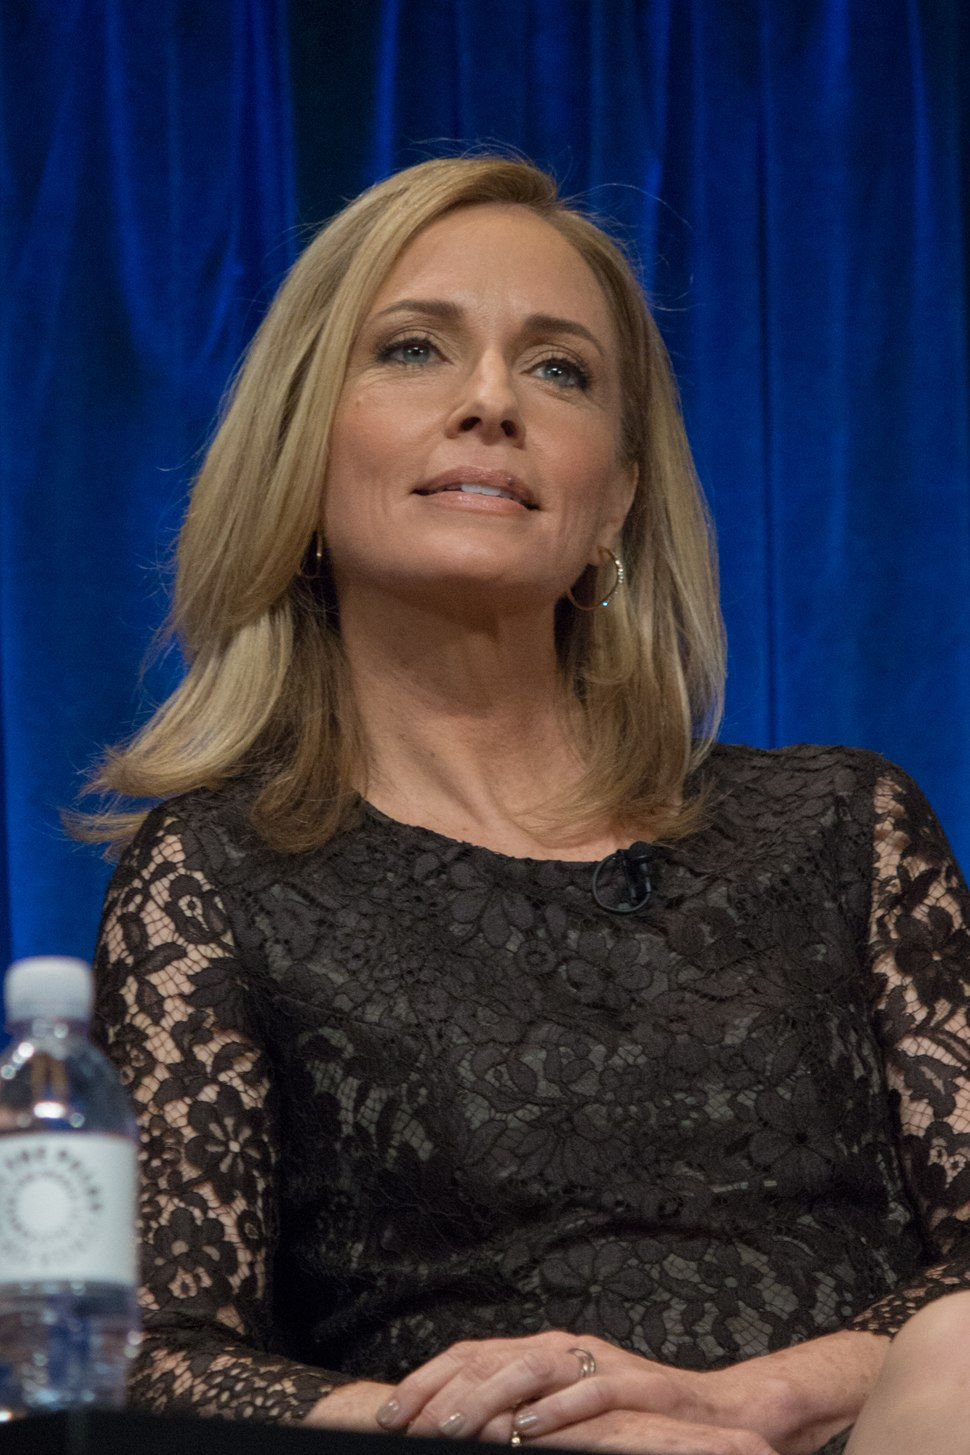 Susanna Thompson at PaleyFest 2013